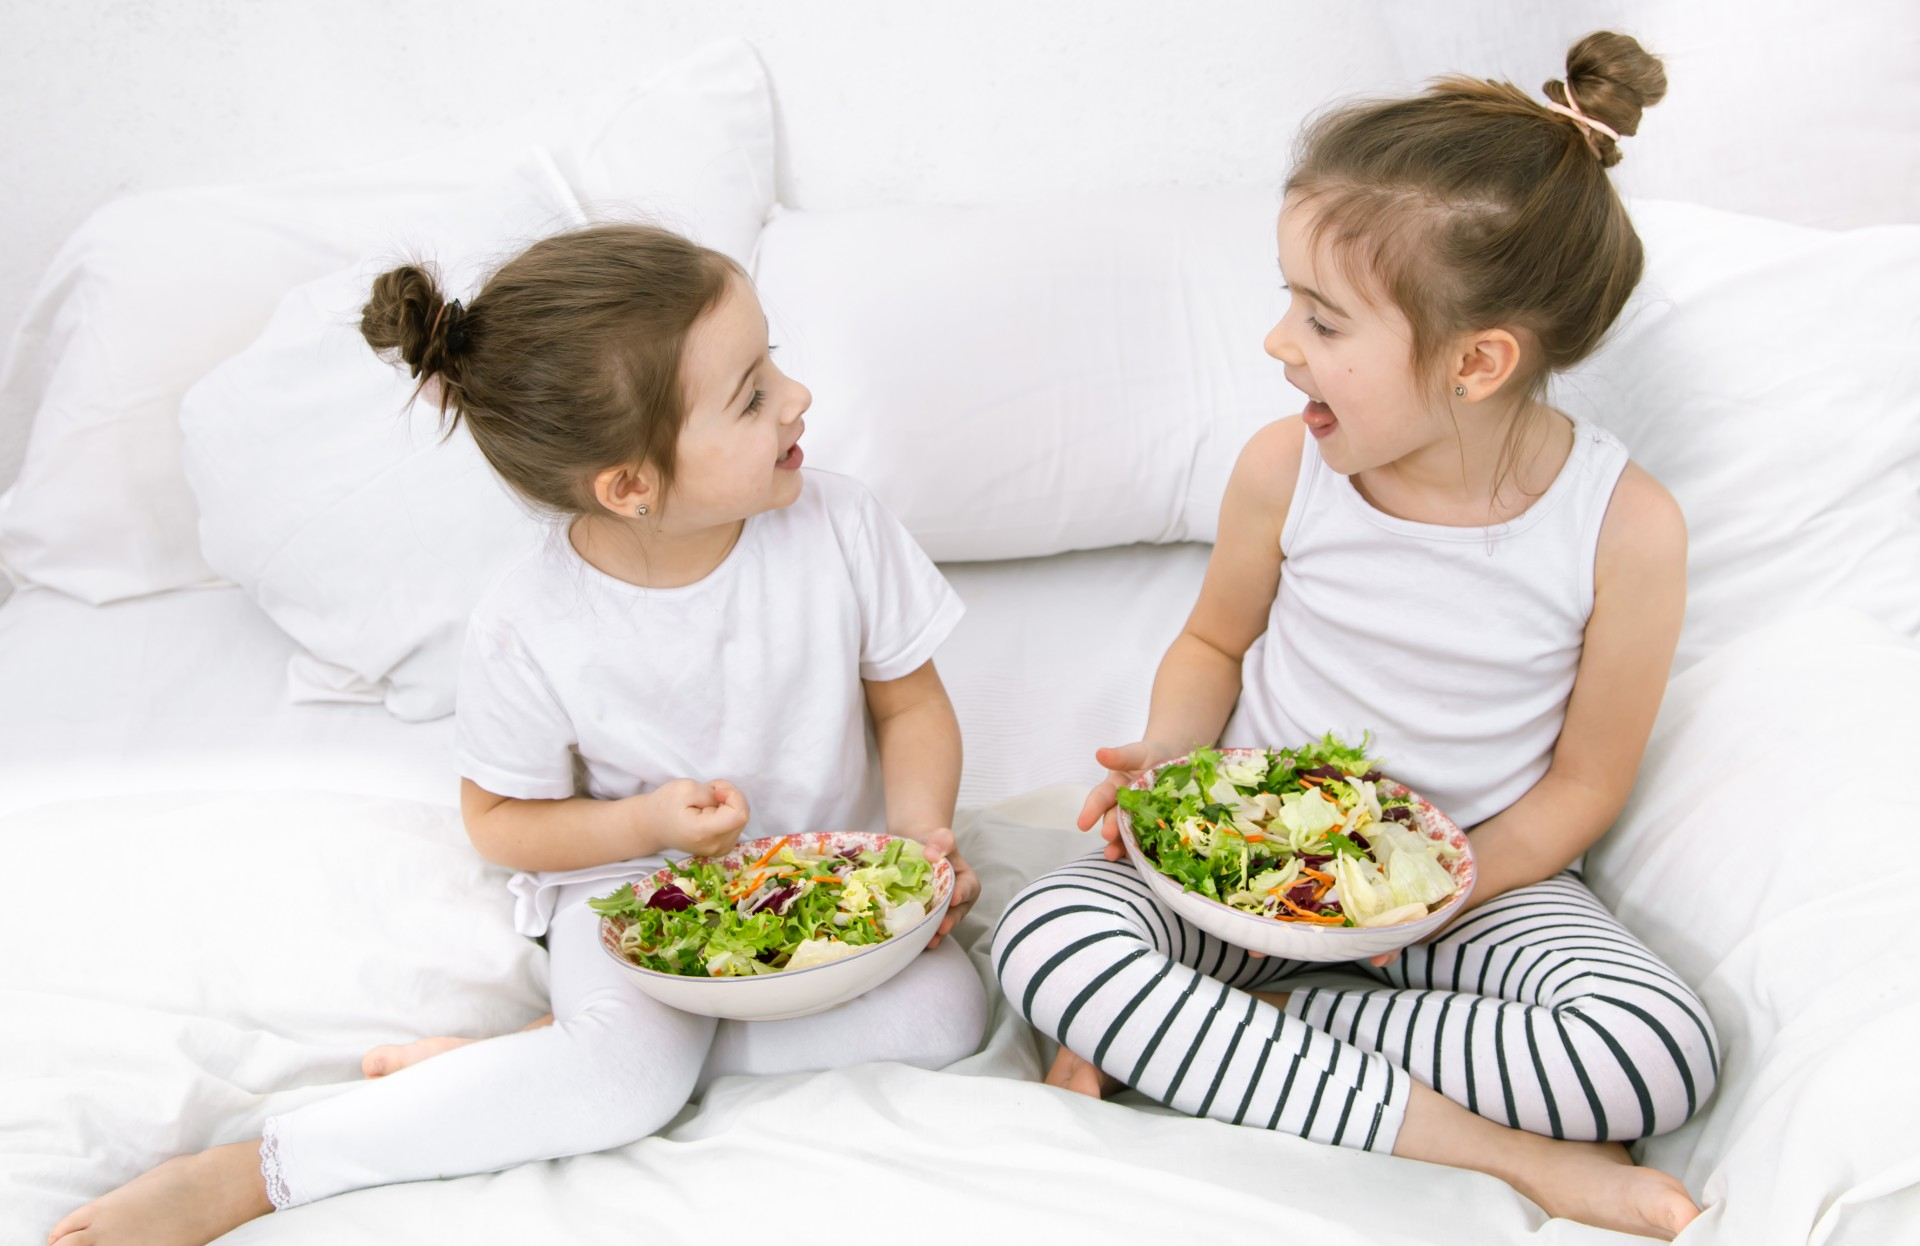 children eating healthy foods on a bed